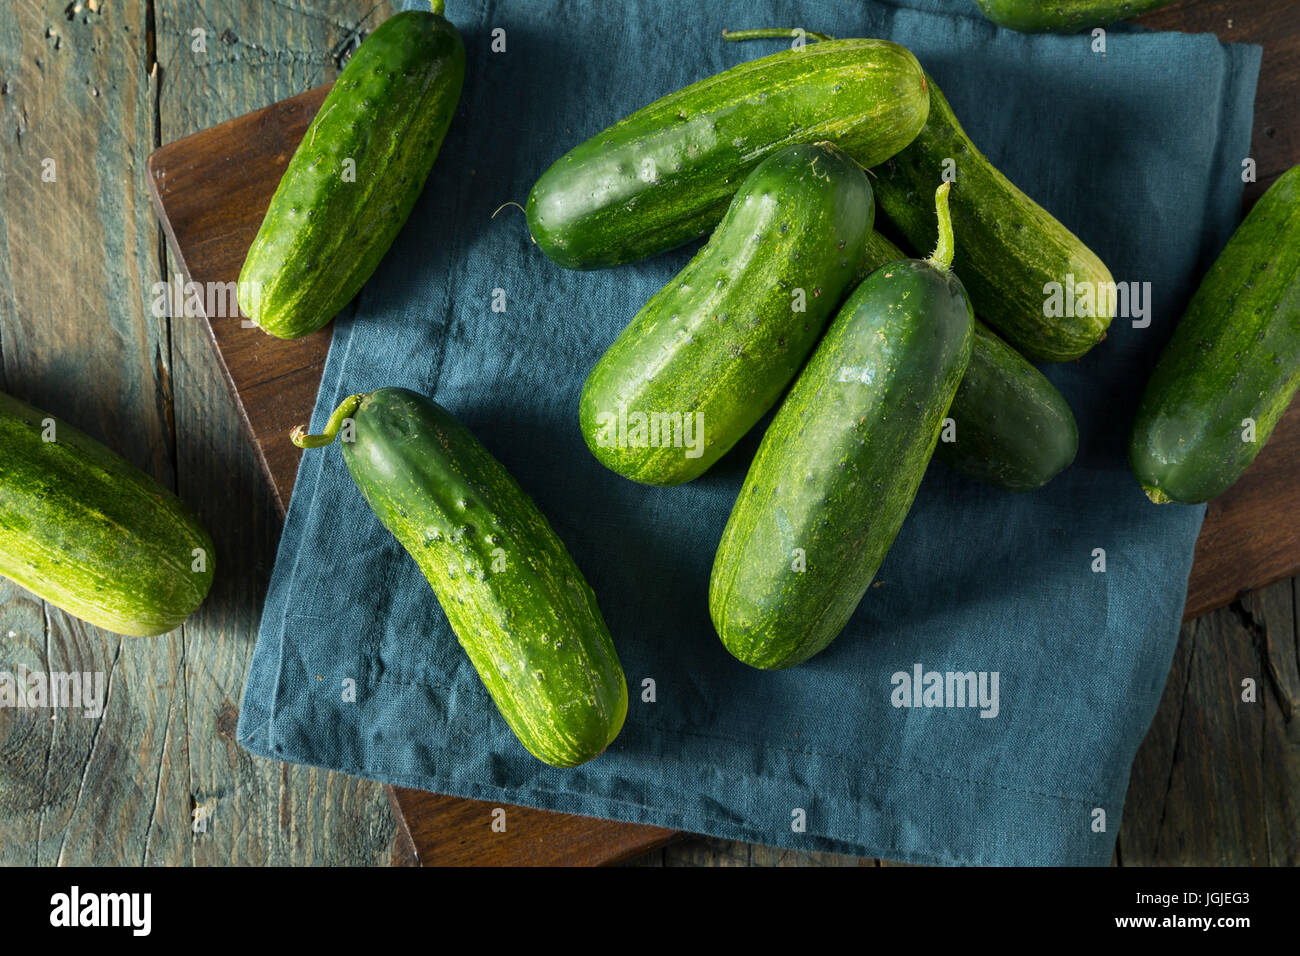 Raw Green Organic PIckle Cucumbers Ready to Eat - Stock Image